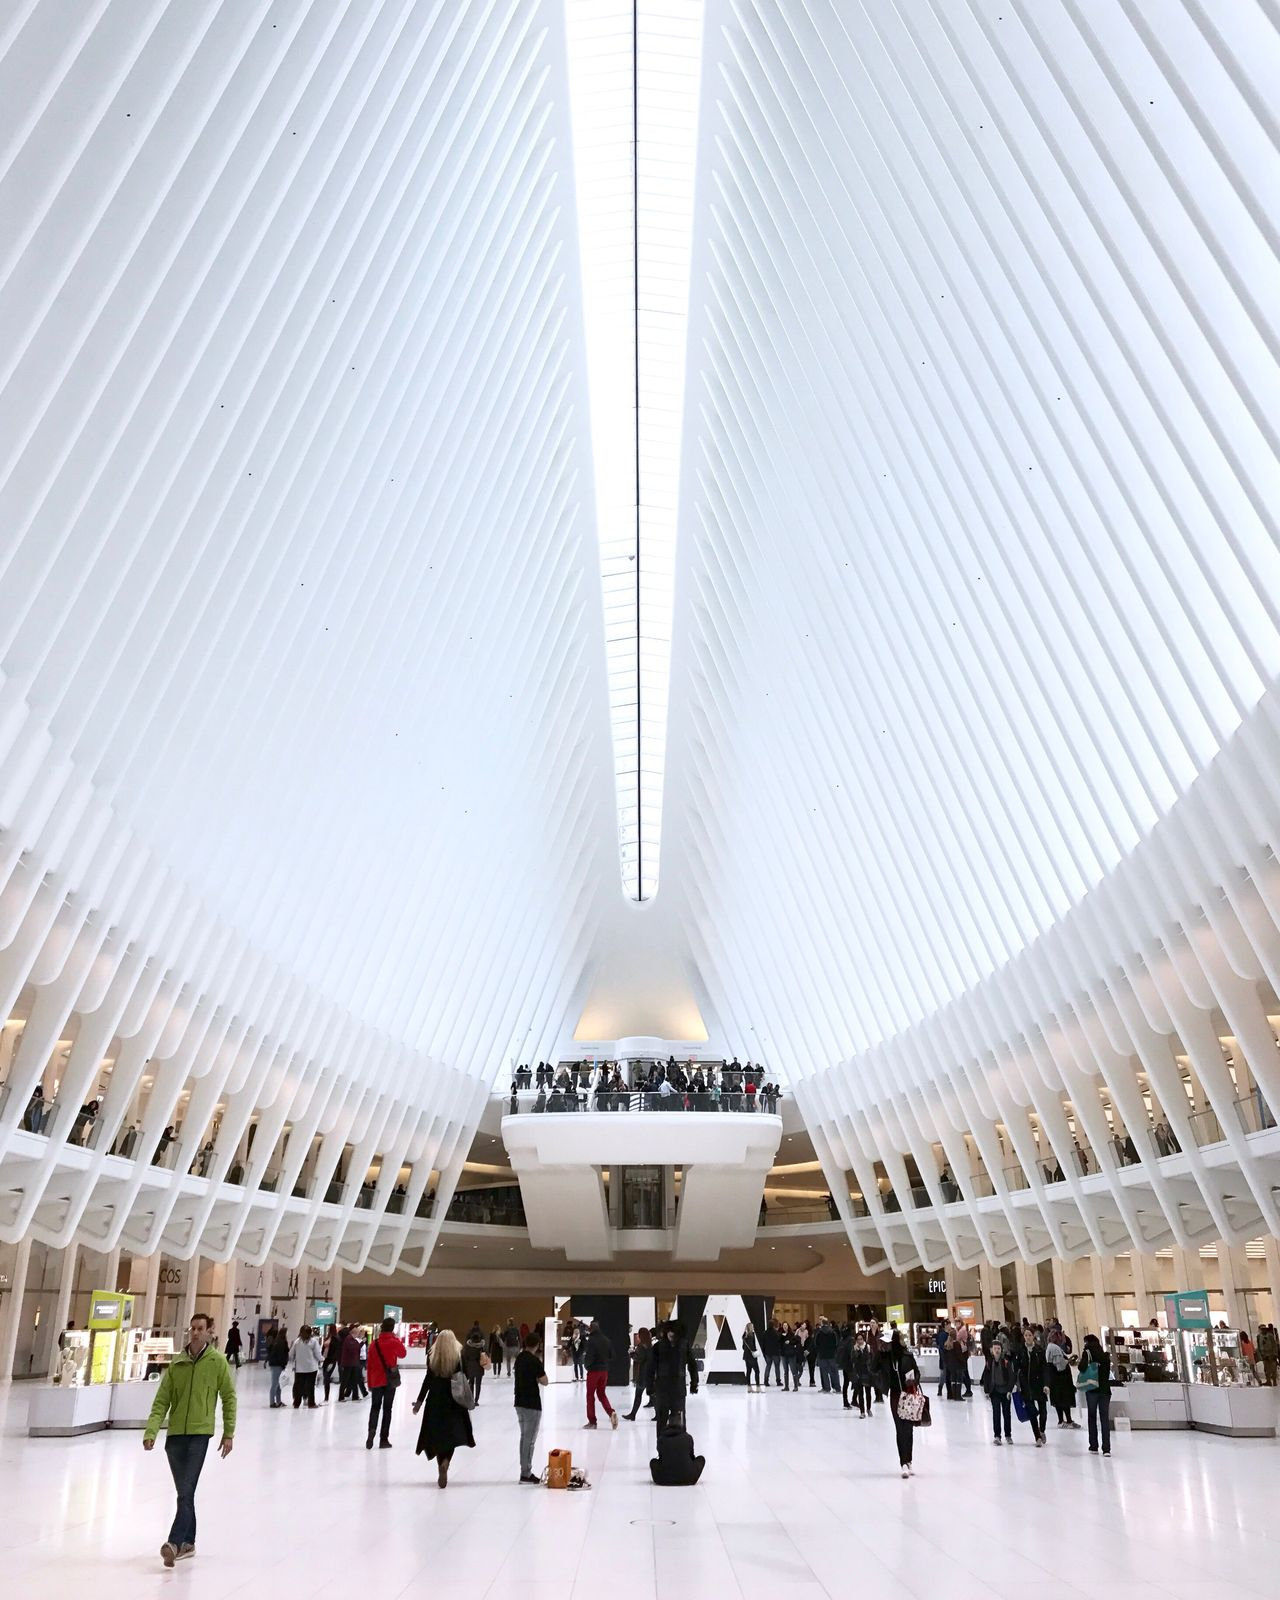 Oculus Calatrava Architecture Architecture_collection Architectural Feature Large Group Of People People The Architect - 2017 EyeEm Awards EyeEm Gallery EyeEm EyeEm Best Shots City Architecturelovers Check This Out Travel Destinations Crowd Streetphotography New York City New York Street Photography Modern Architecture City Life Mobilephotography IPhone Illuminated BYOPaper!